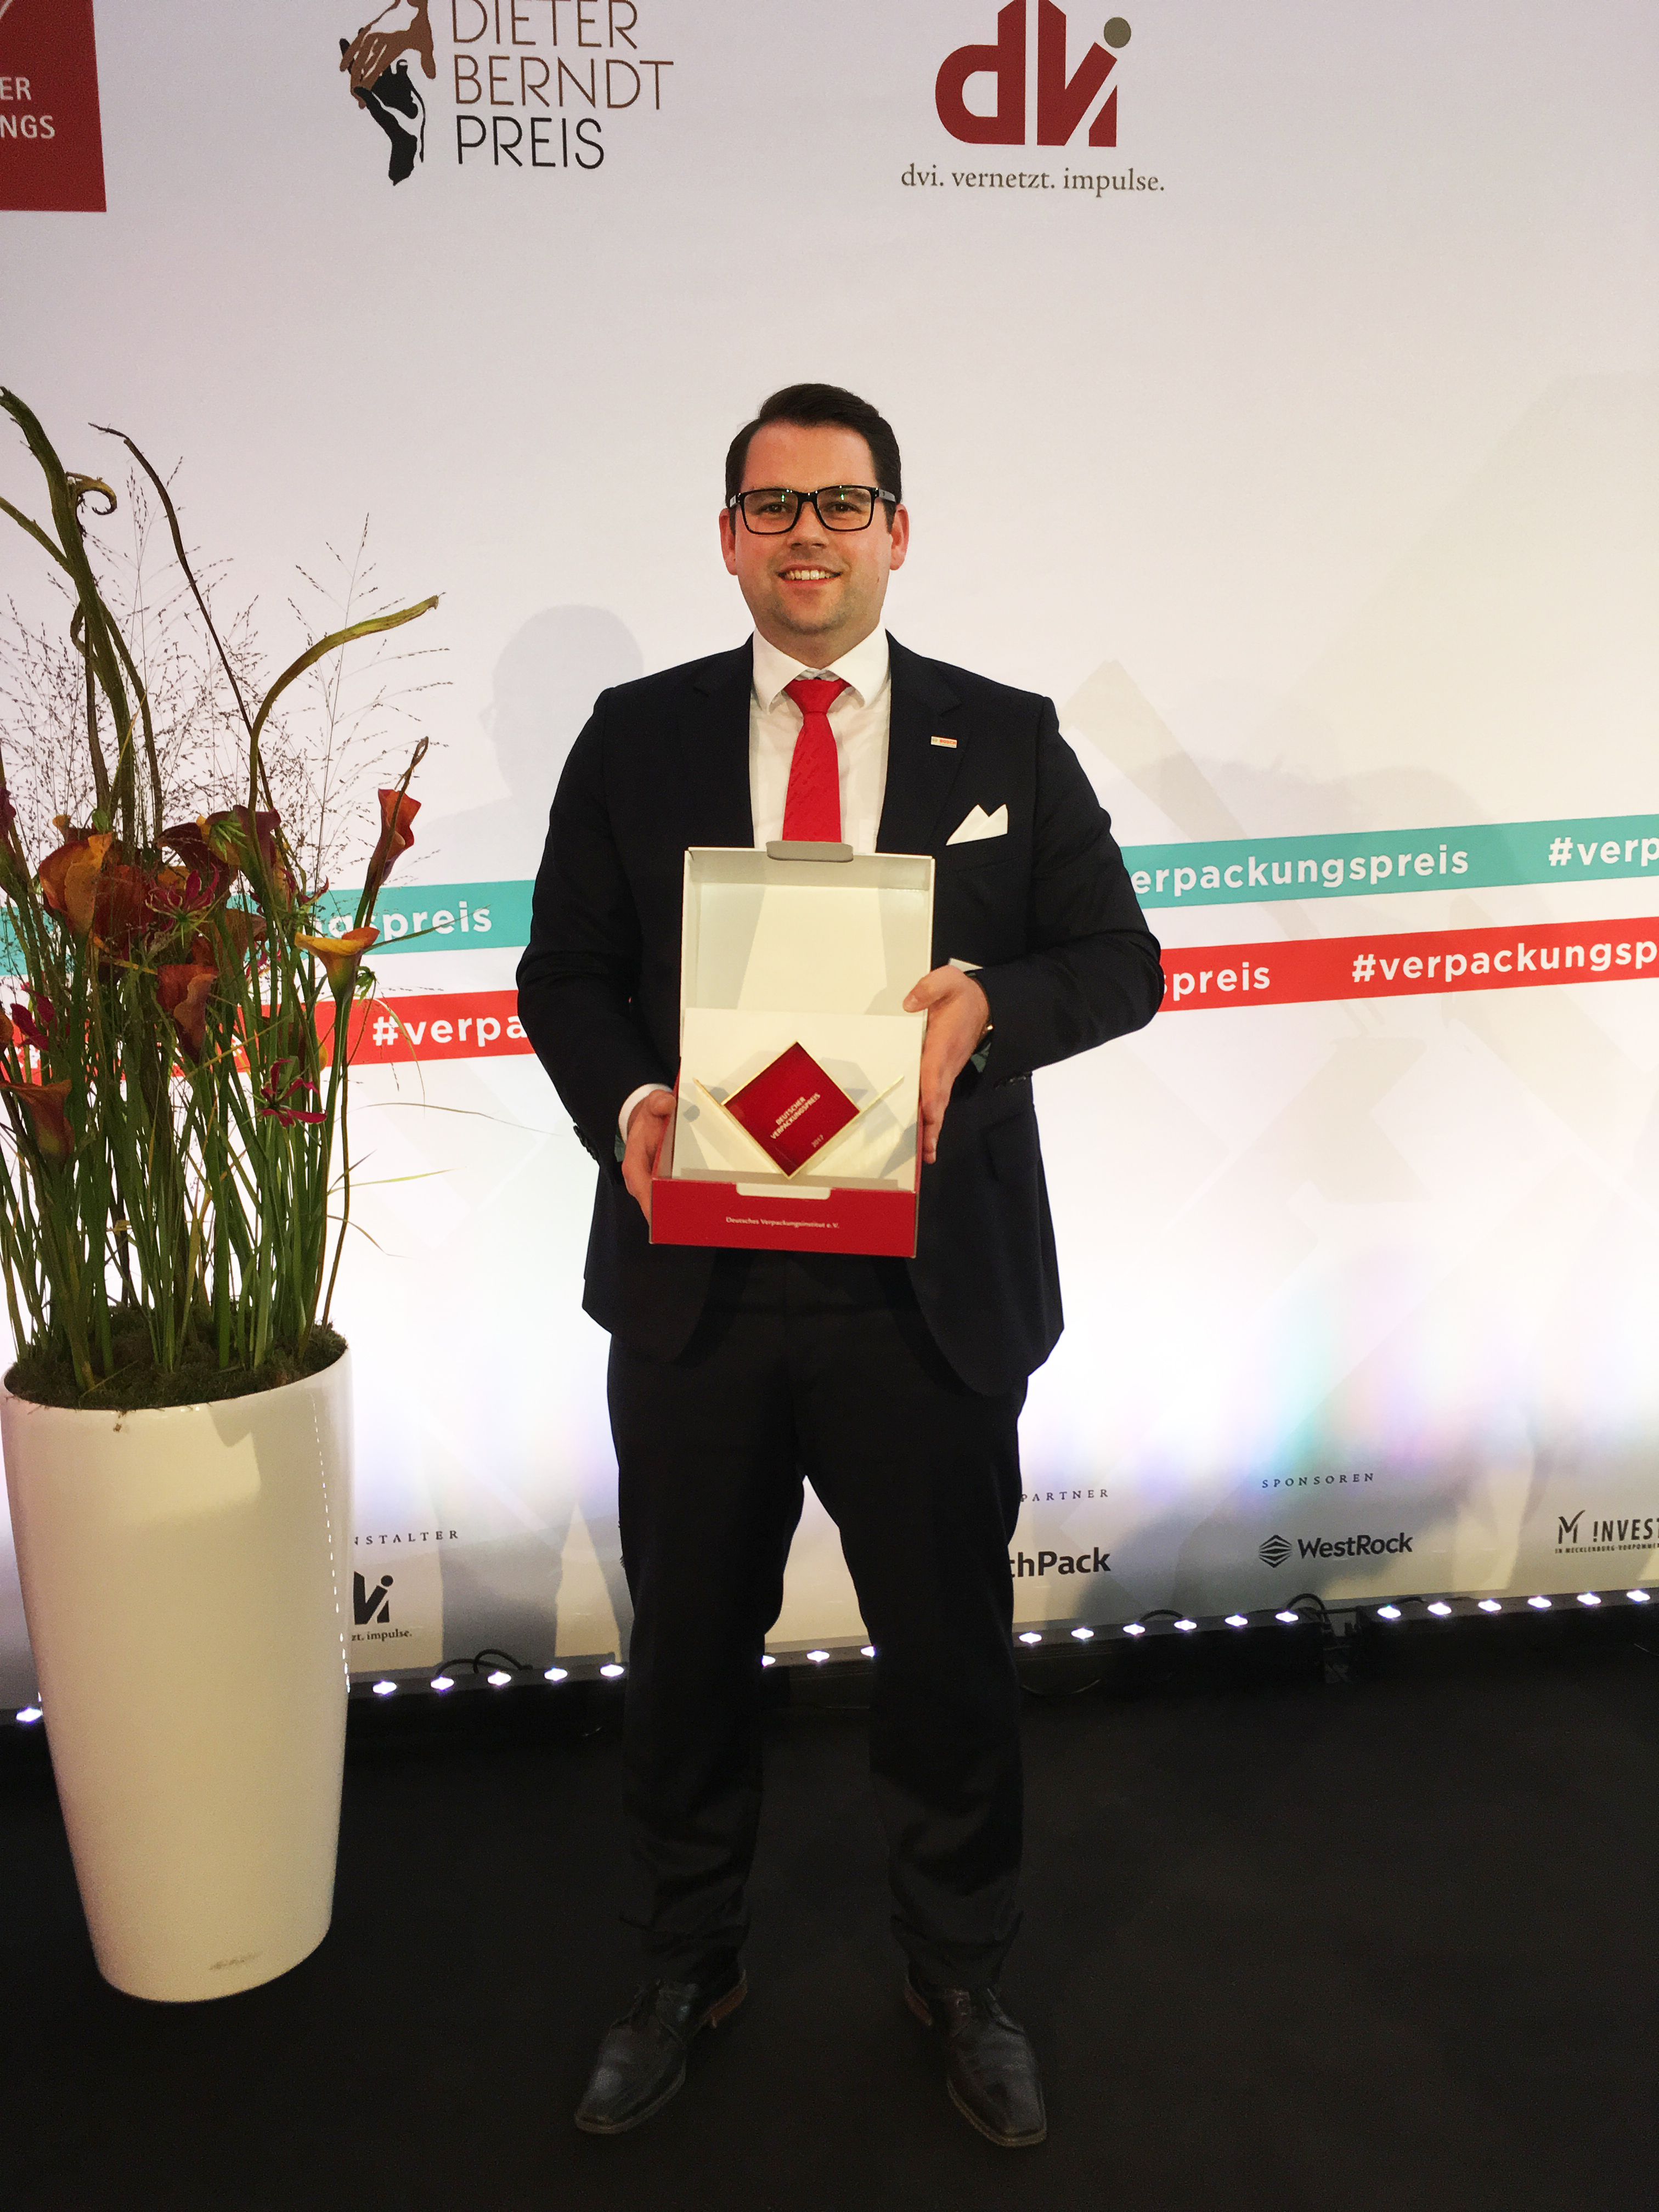 German Packaging Award 2017 for sensor-controlled product detection